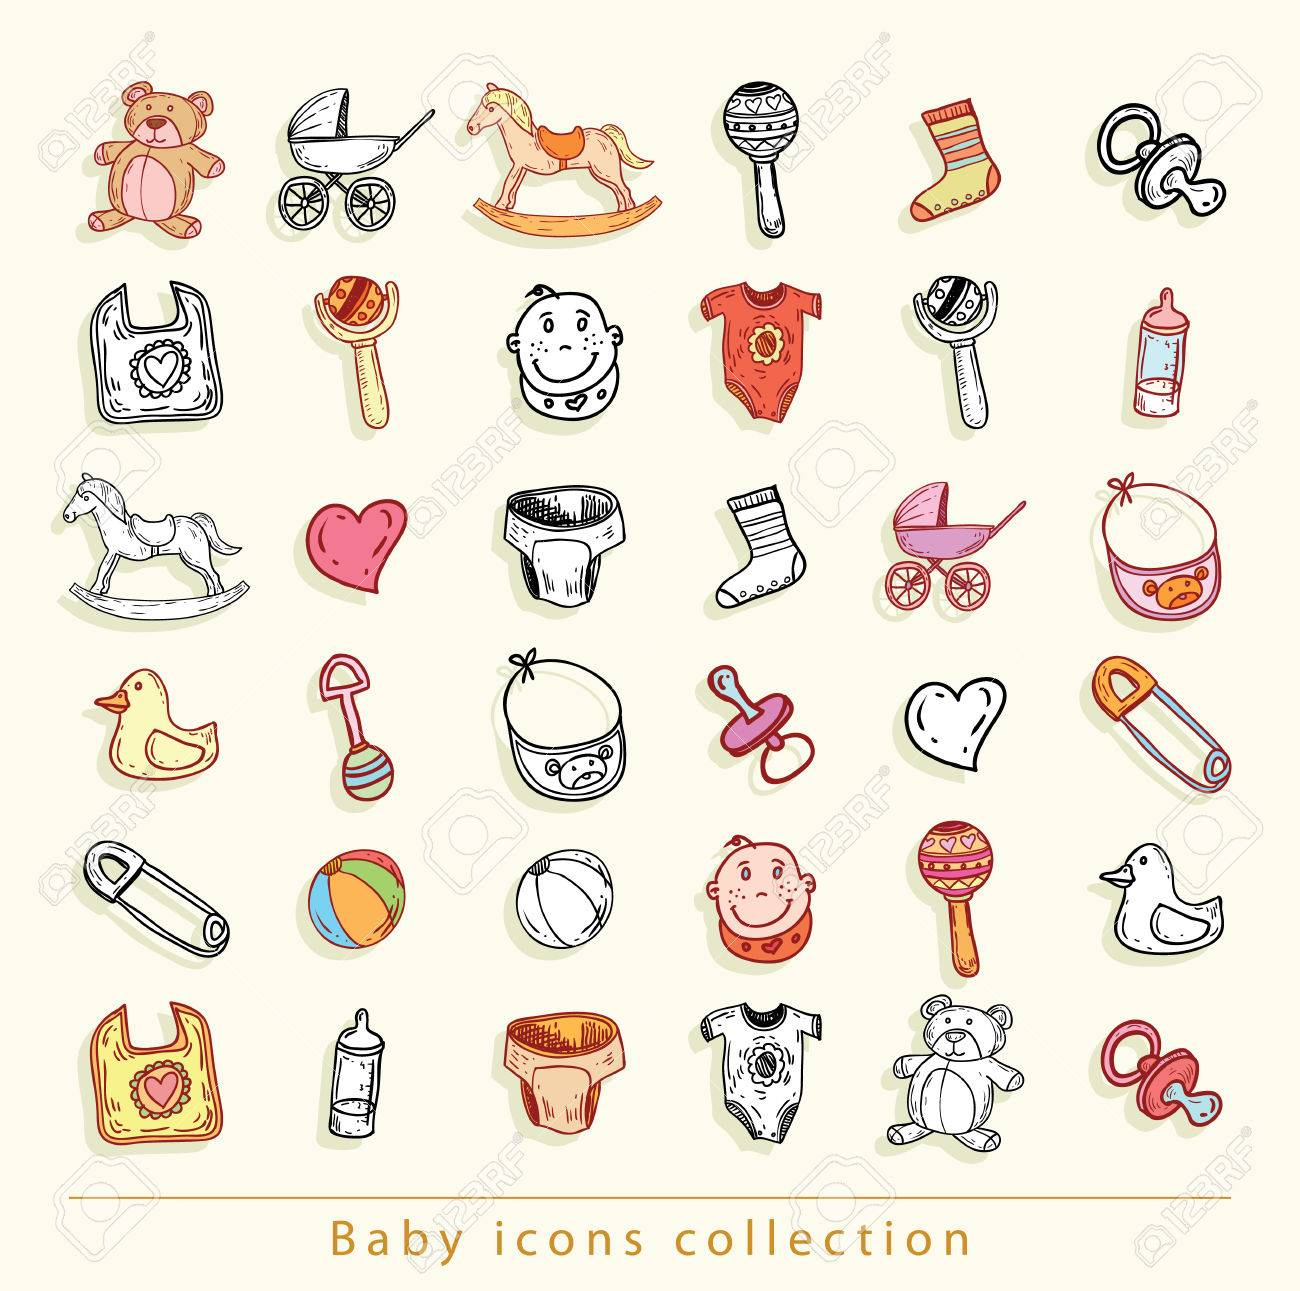 baby icons, vector illustration. - 48738499